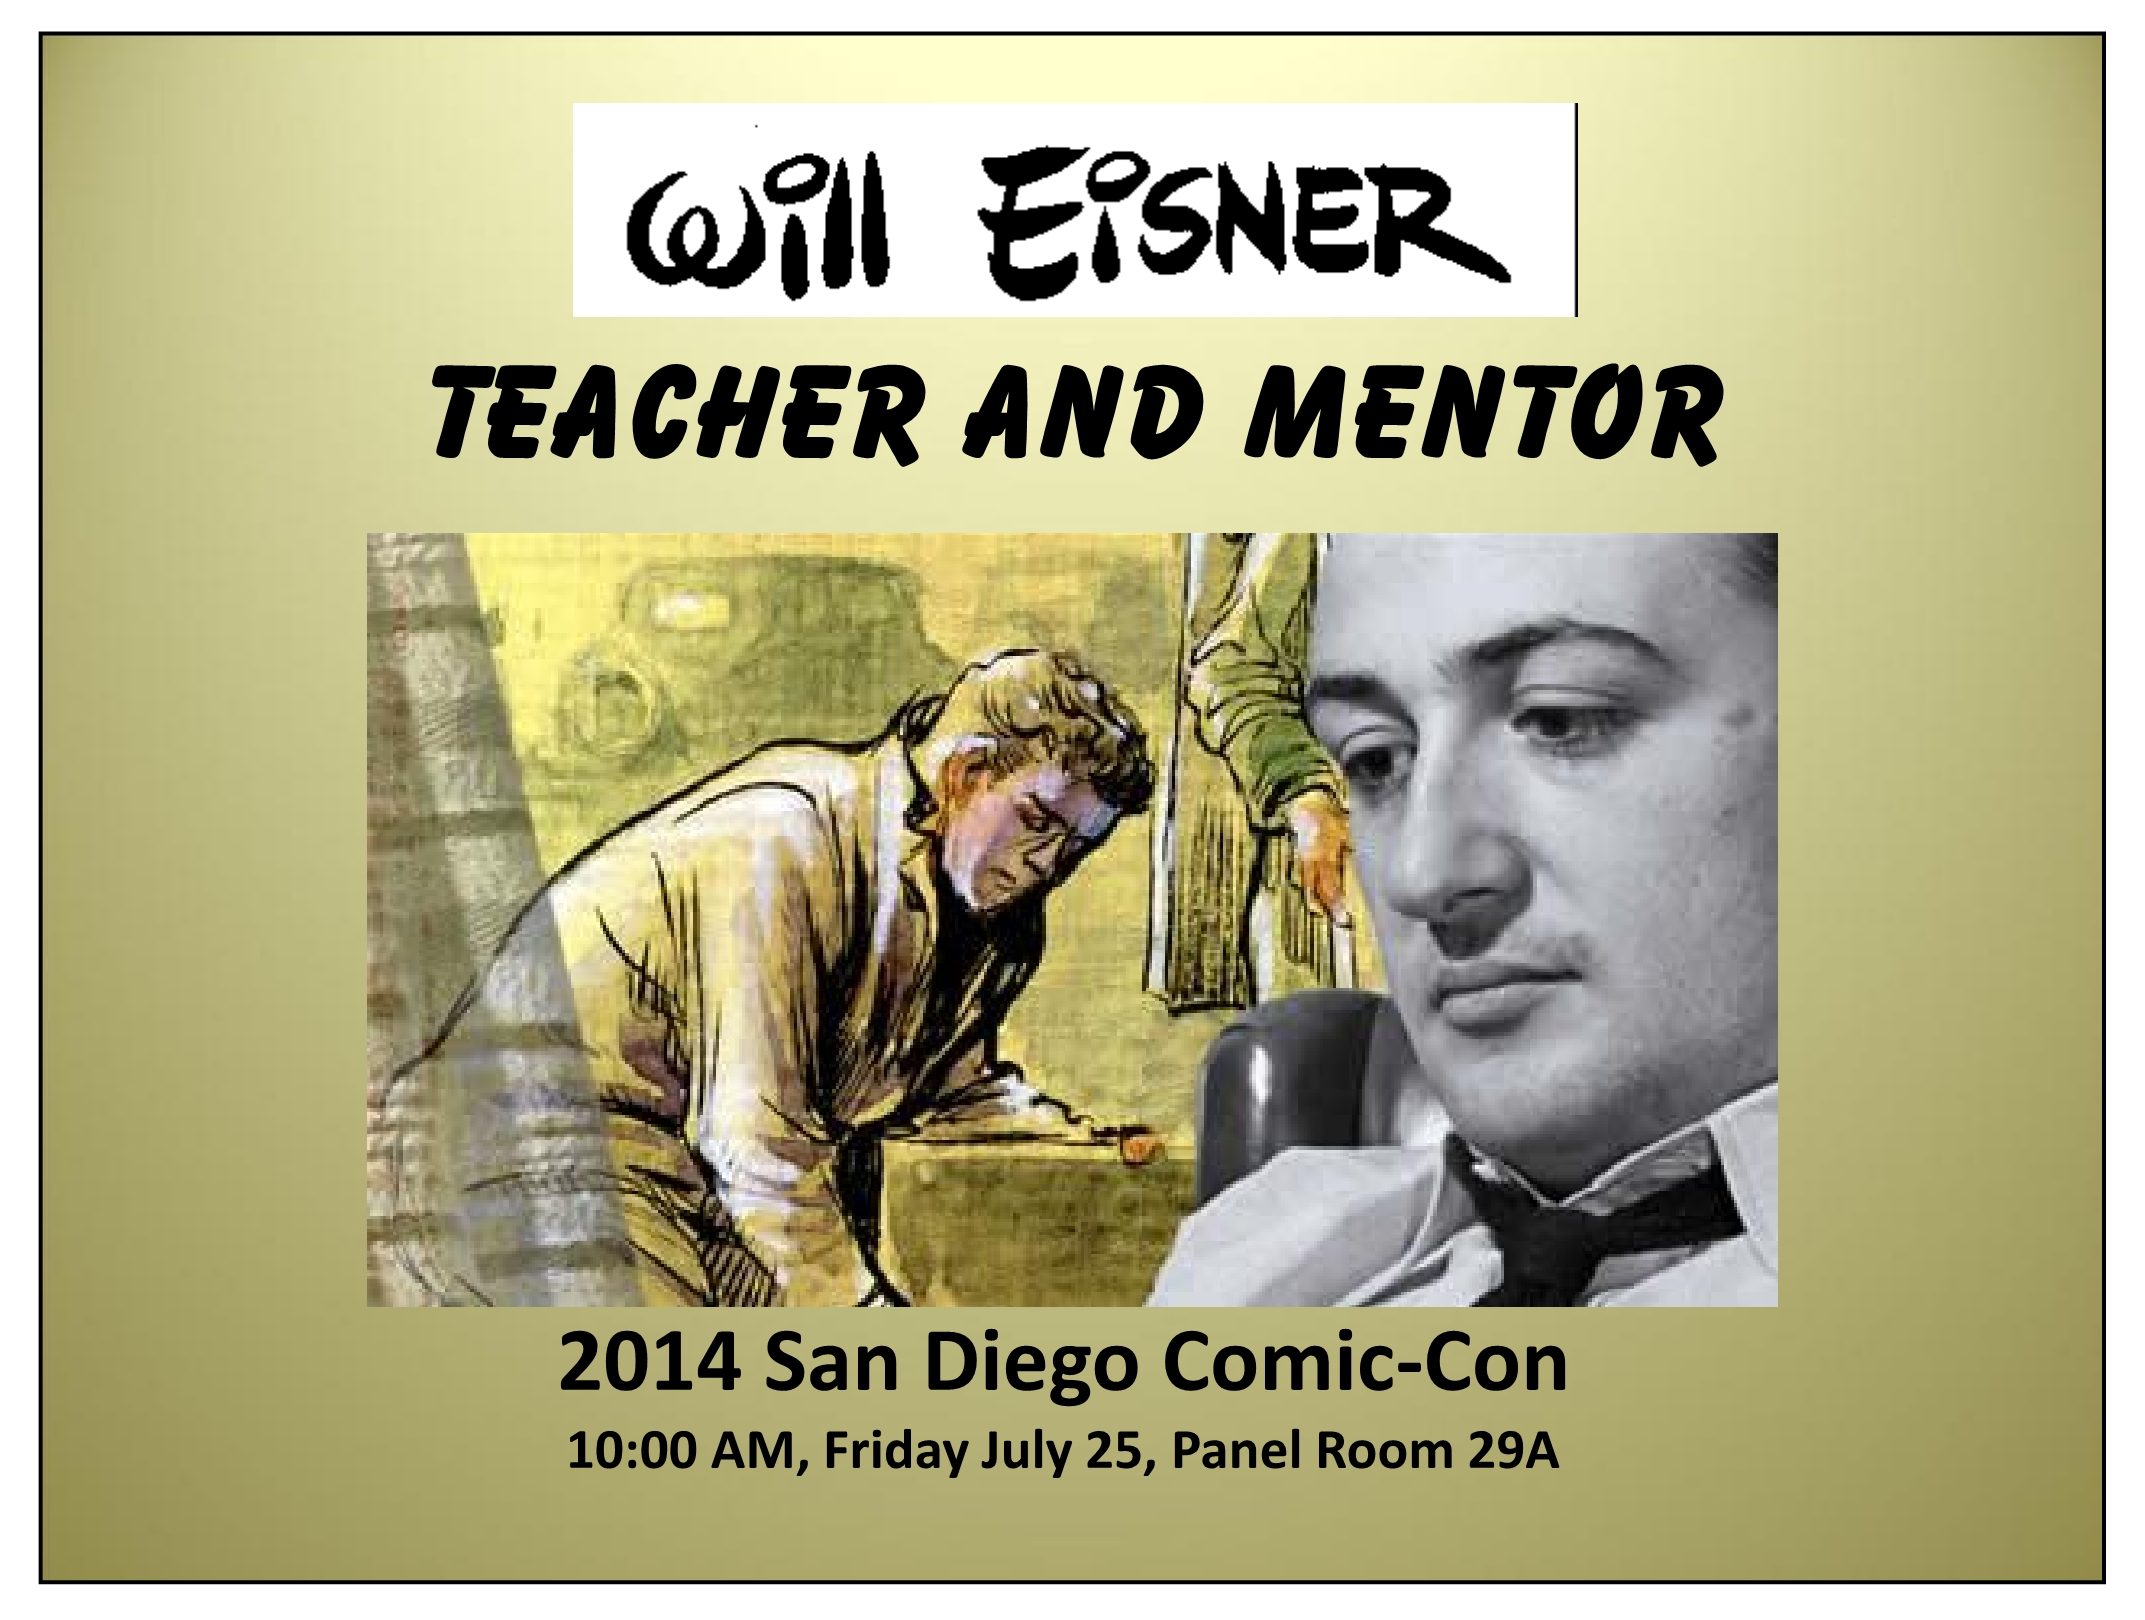 http://www.willeisner.com/the_eisnershpritz/Will_Eisner_SDCC2014.jpg